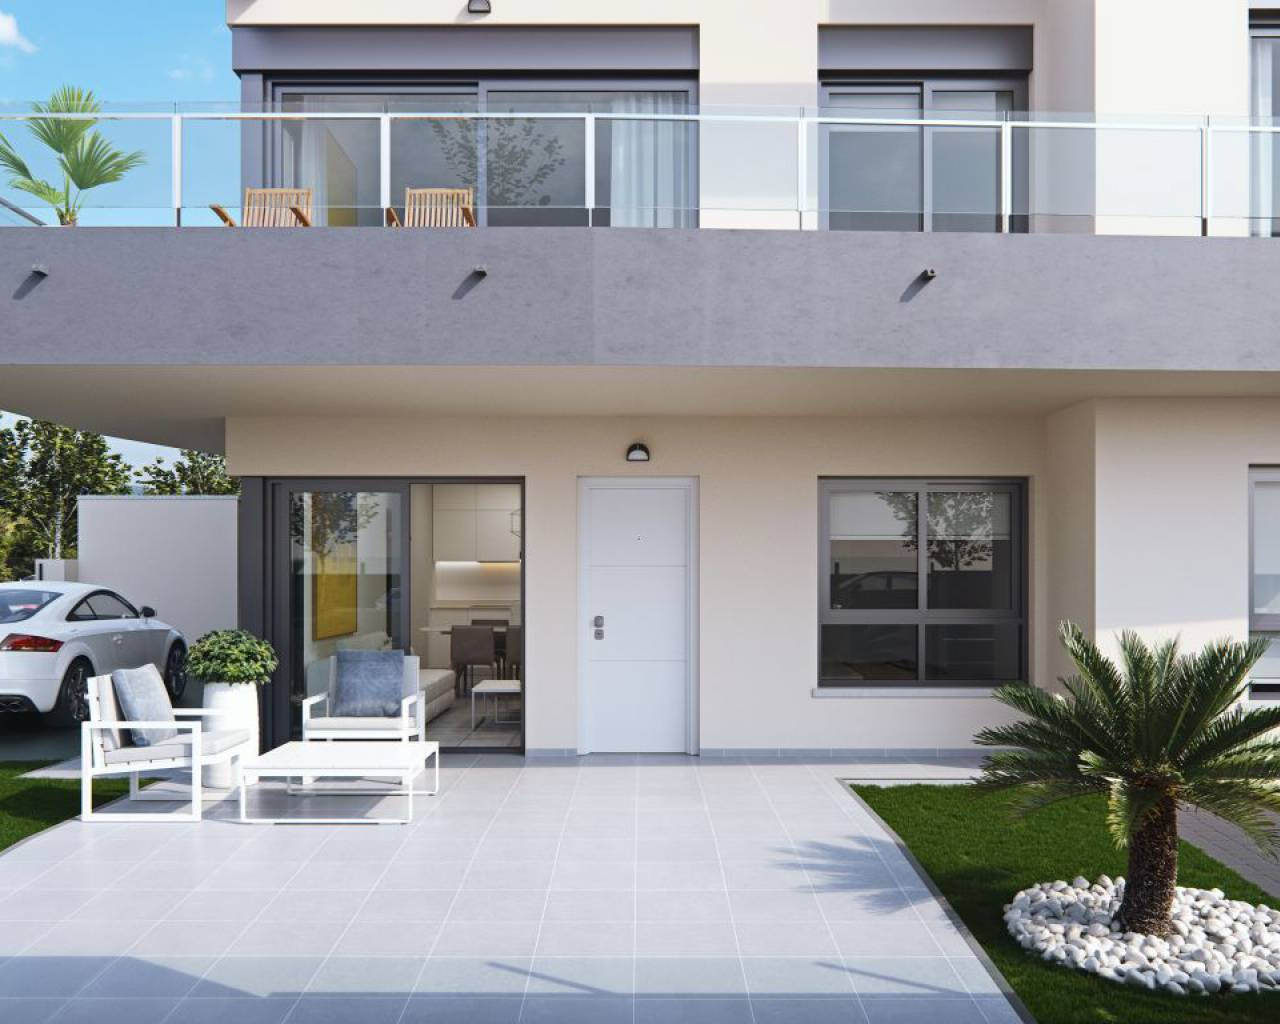 New Build - Duplex - Pilar de la Horadada - Mil palmeras